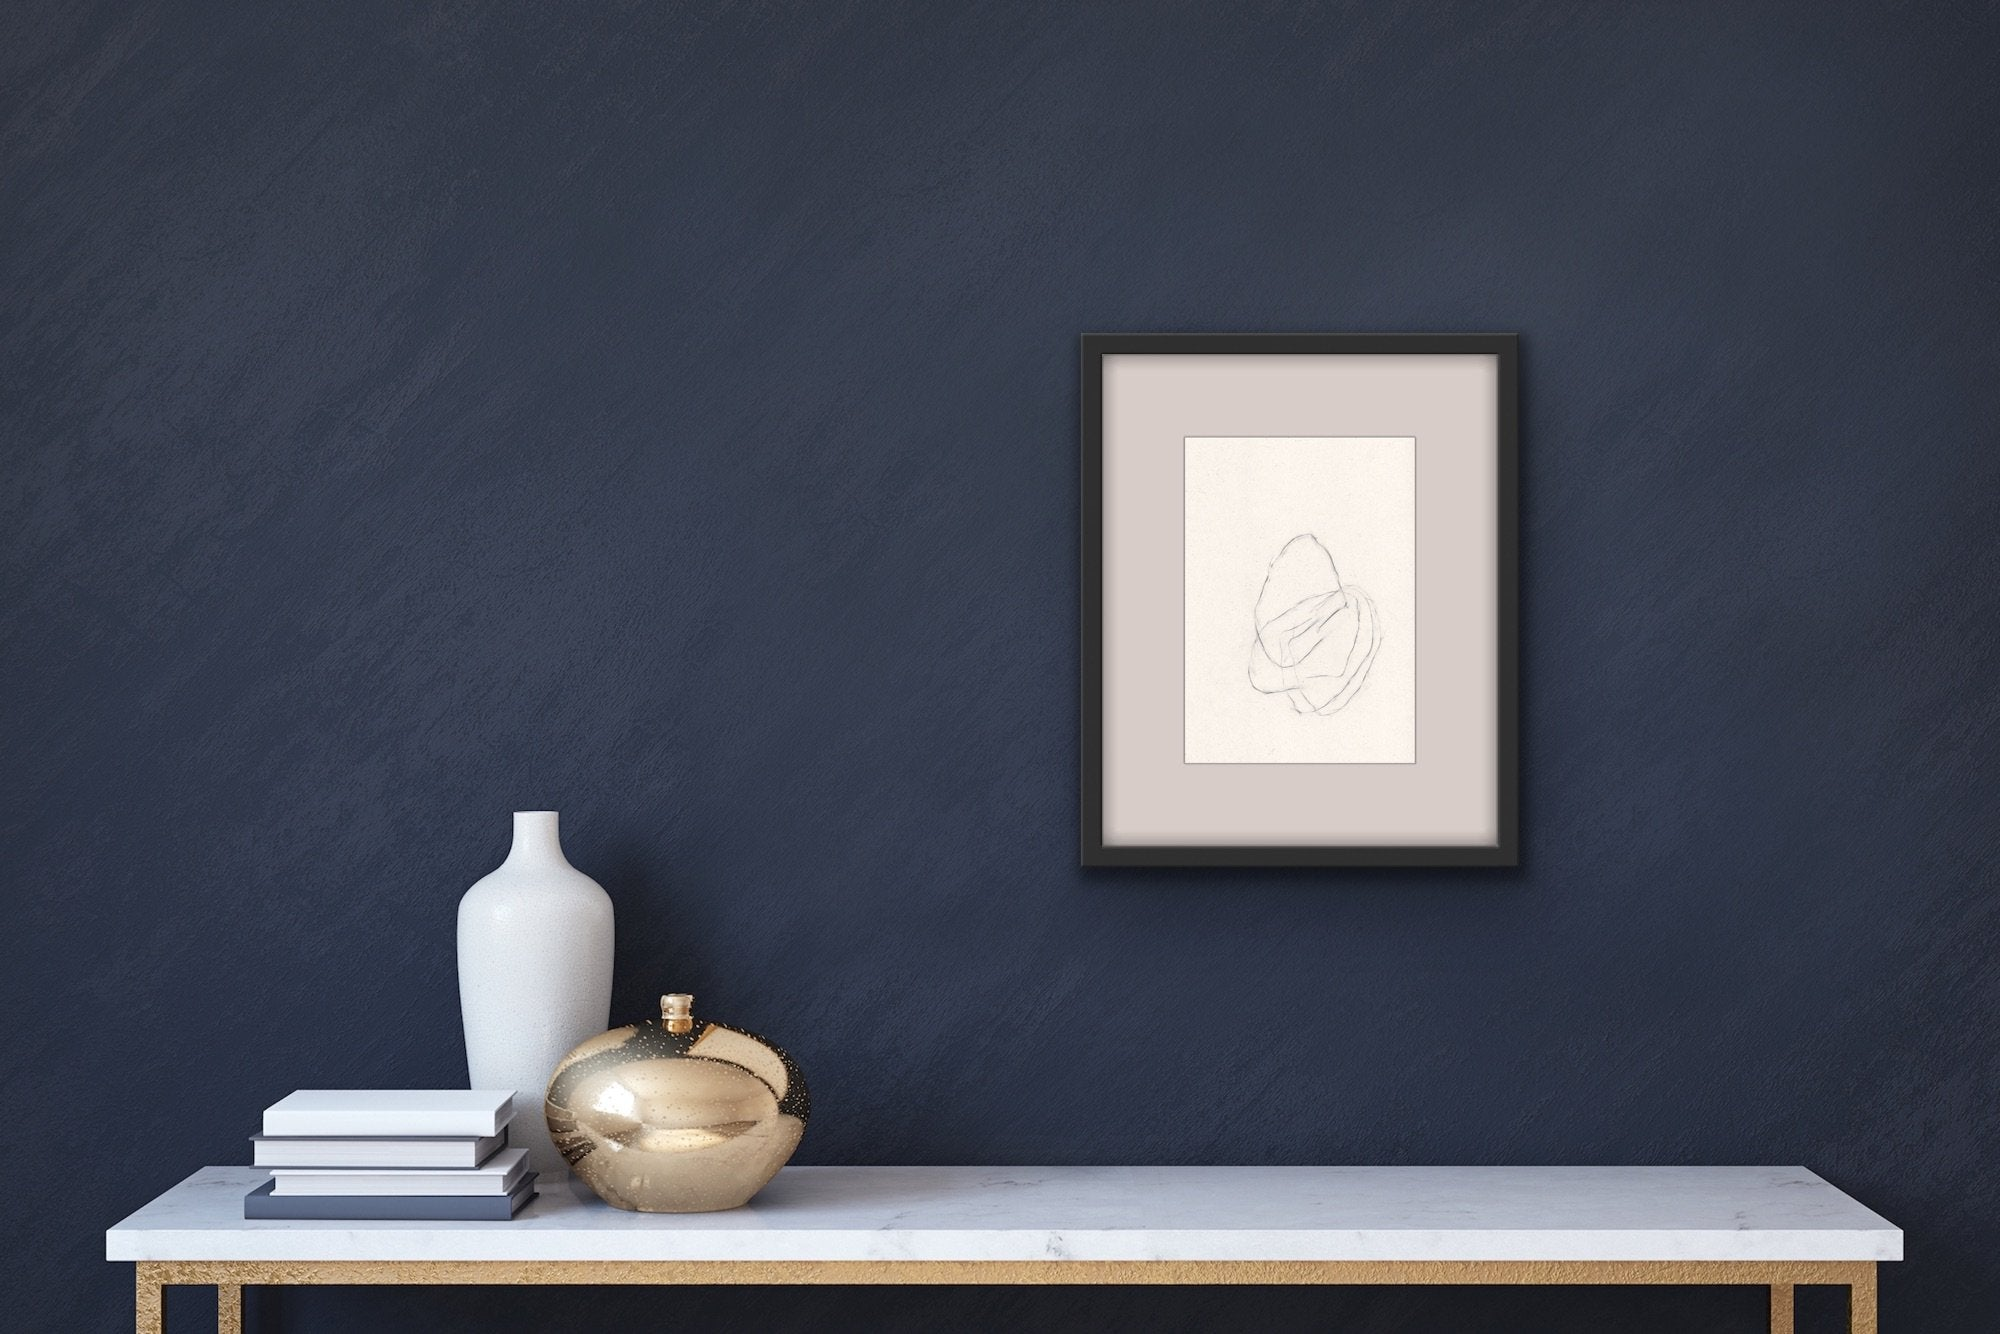 'Unsettled XIV', an abstract, minimalist drawing by contemporary emerging artist Kayleigh Harris, shown in situ